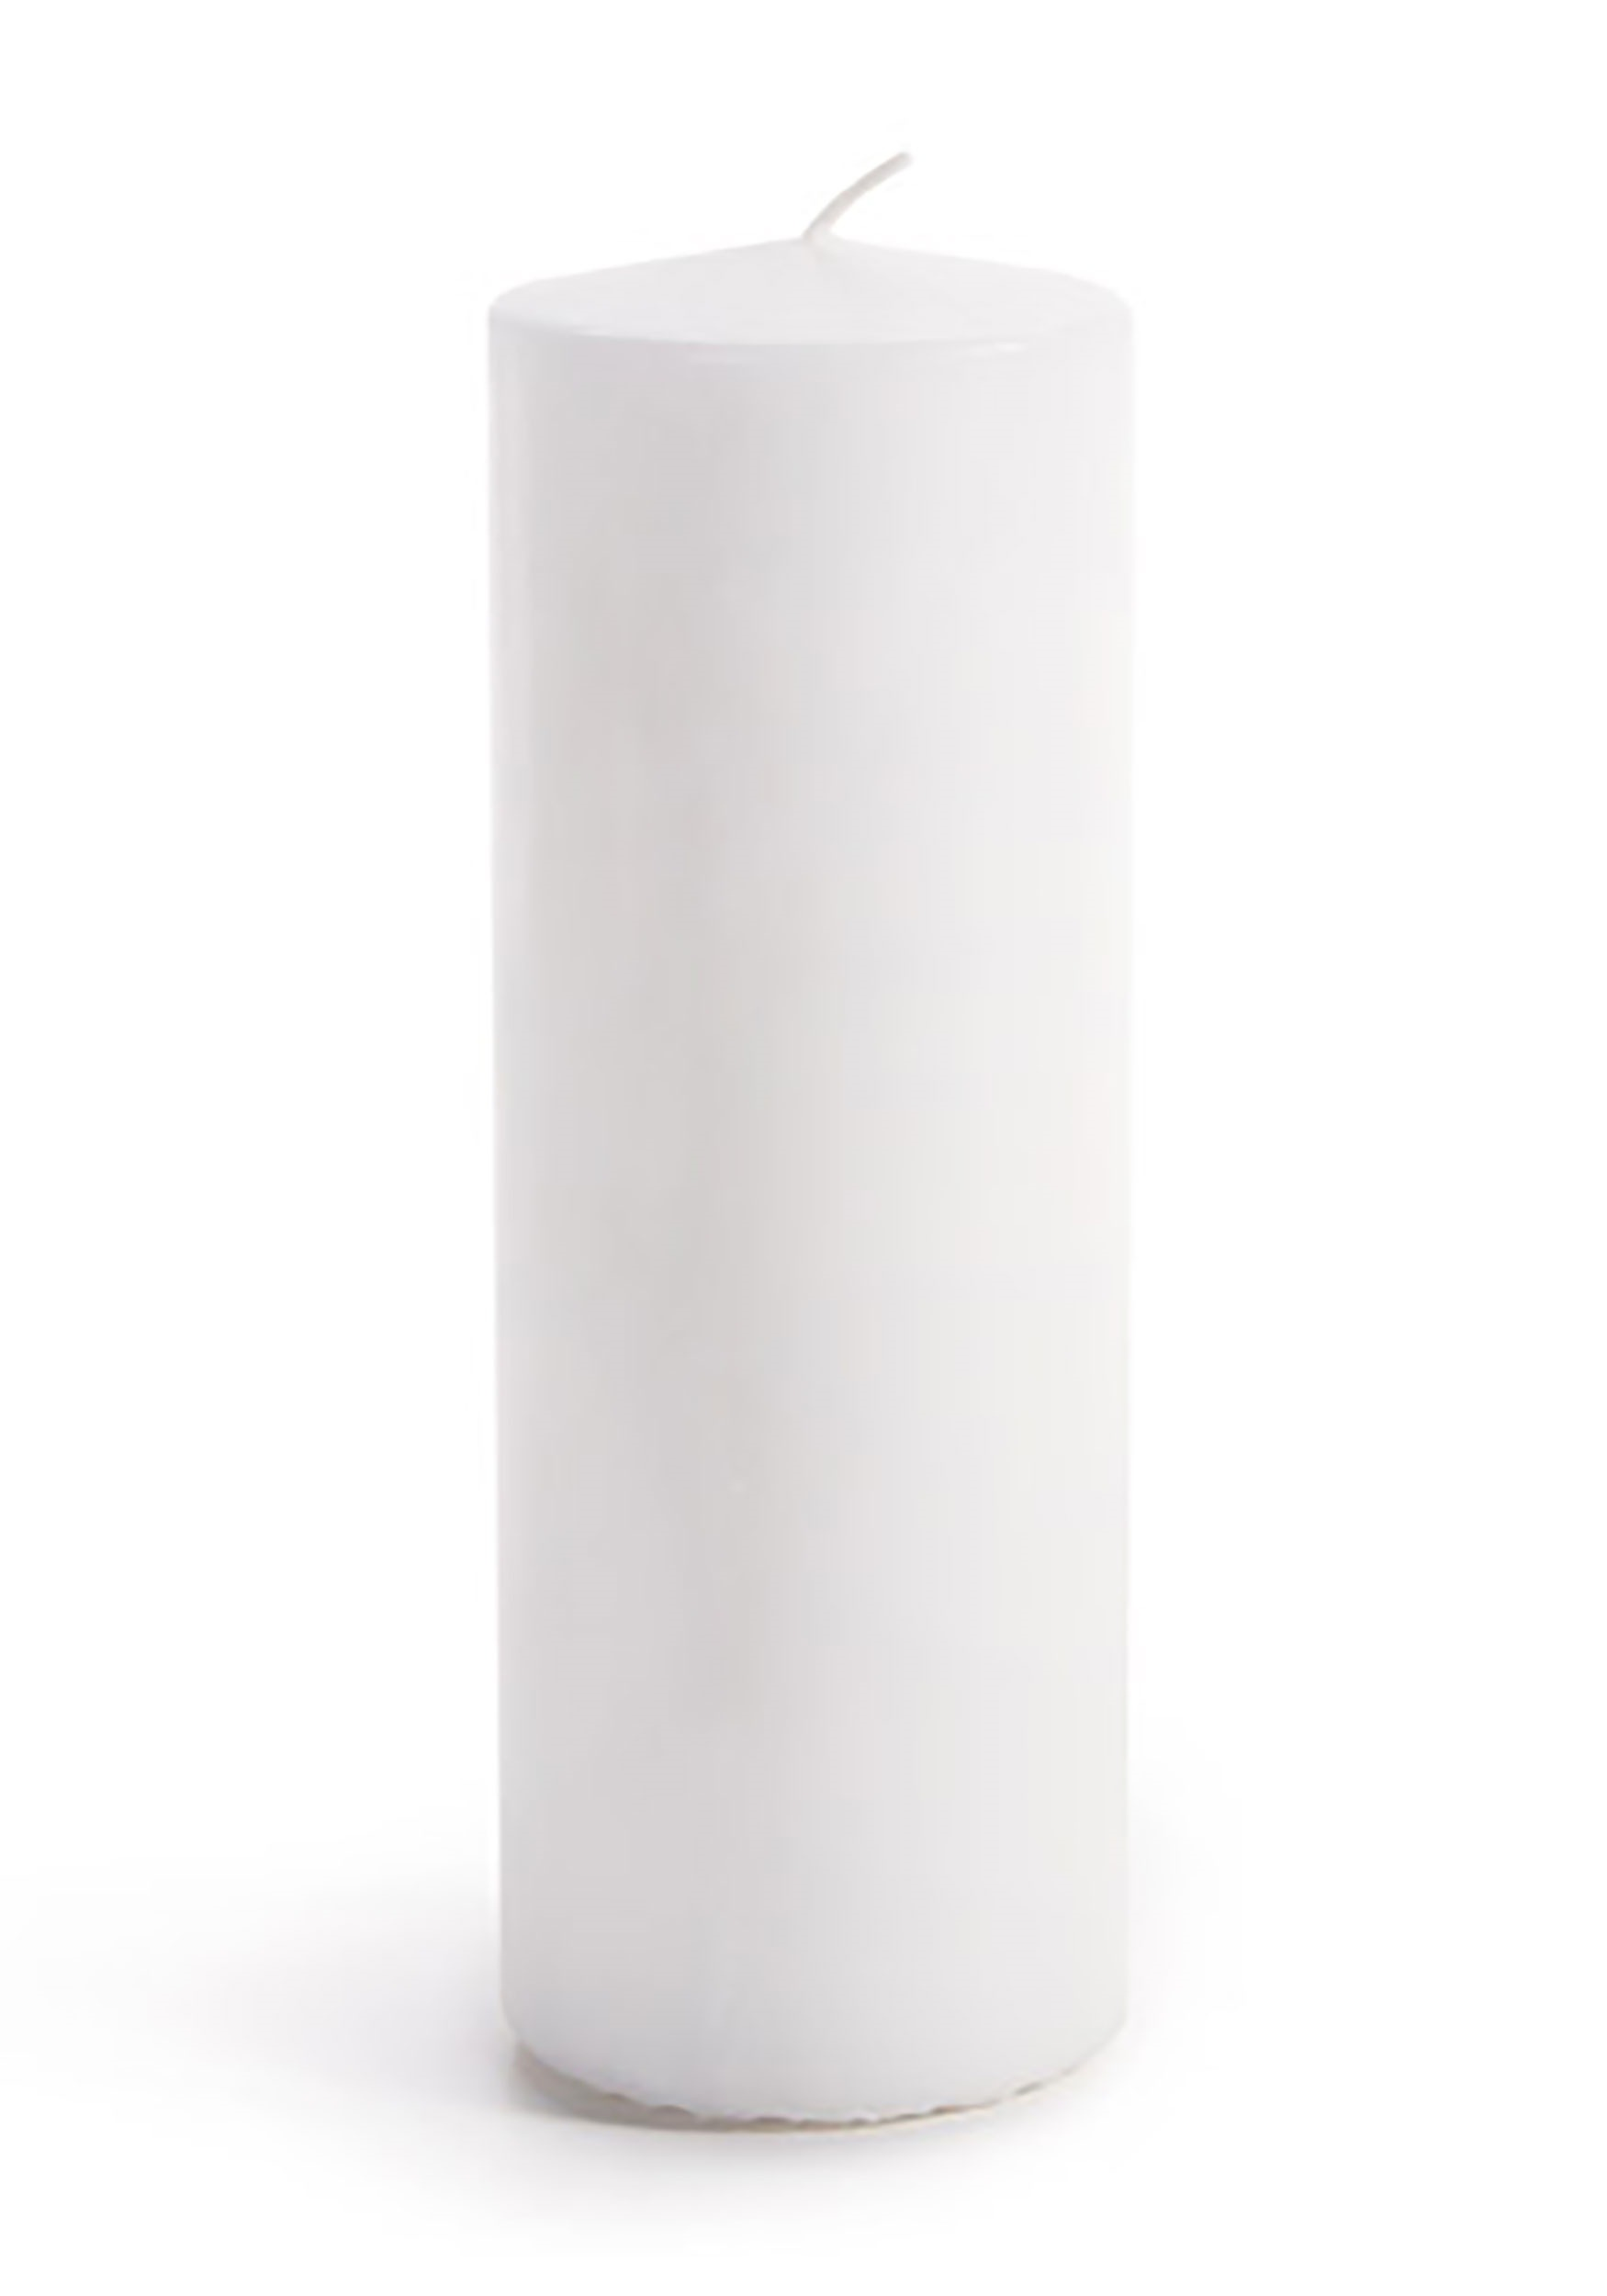 Set of 3 Fresh White Unscented Pillar Candles 2-7/8